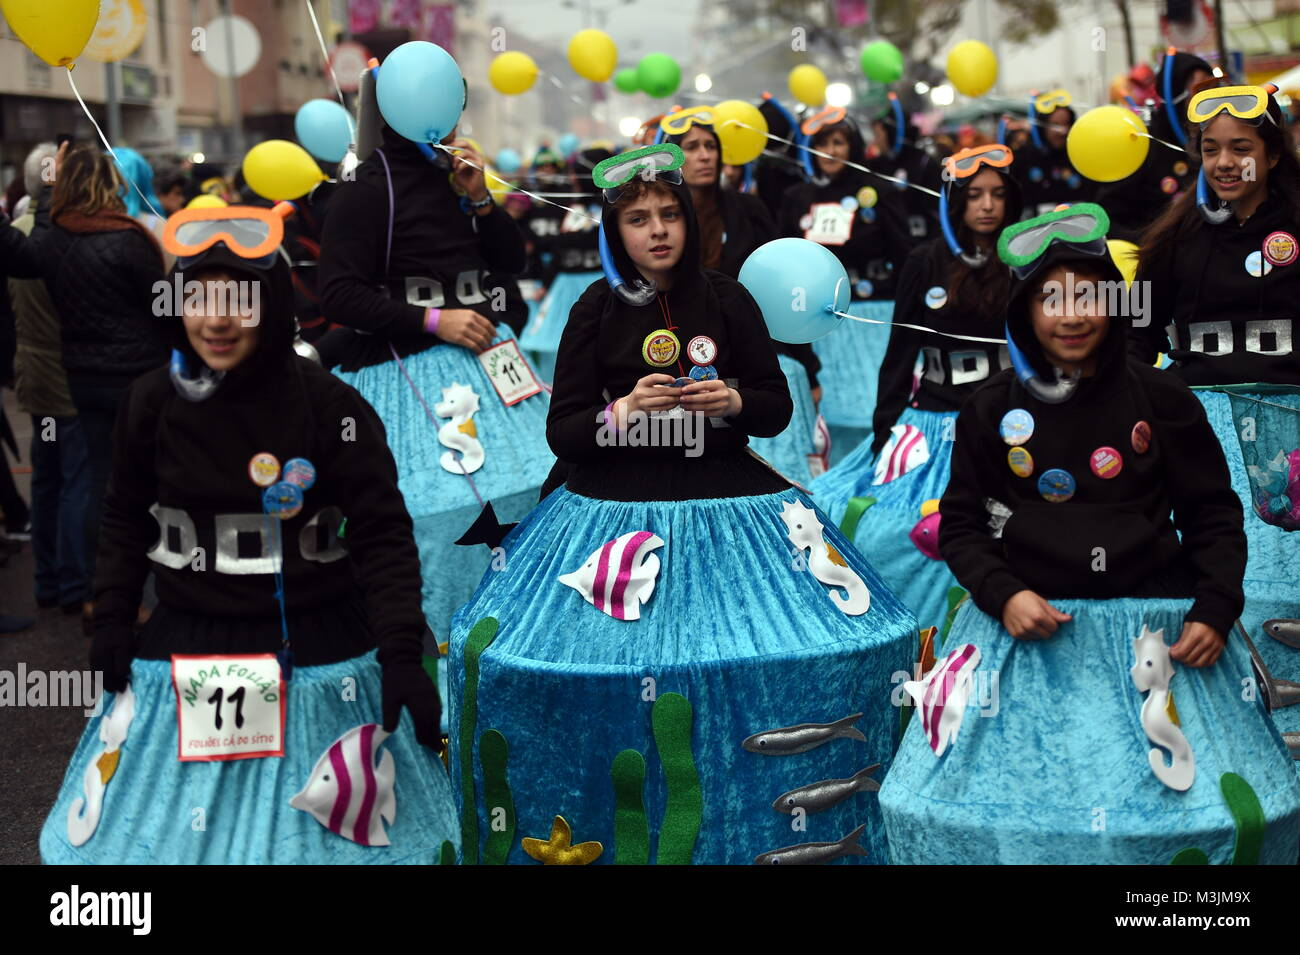 Lisbon, Portuguese capital Lisbon. 11th Feb, 2018. Revellers dressed in colorful costumes participate in the carnival - Stock Image